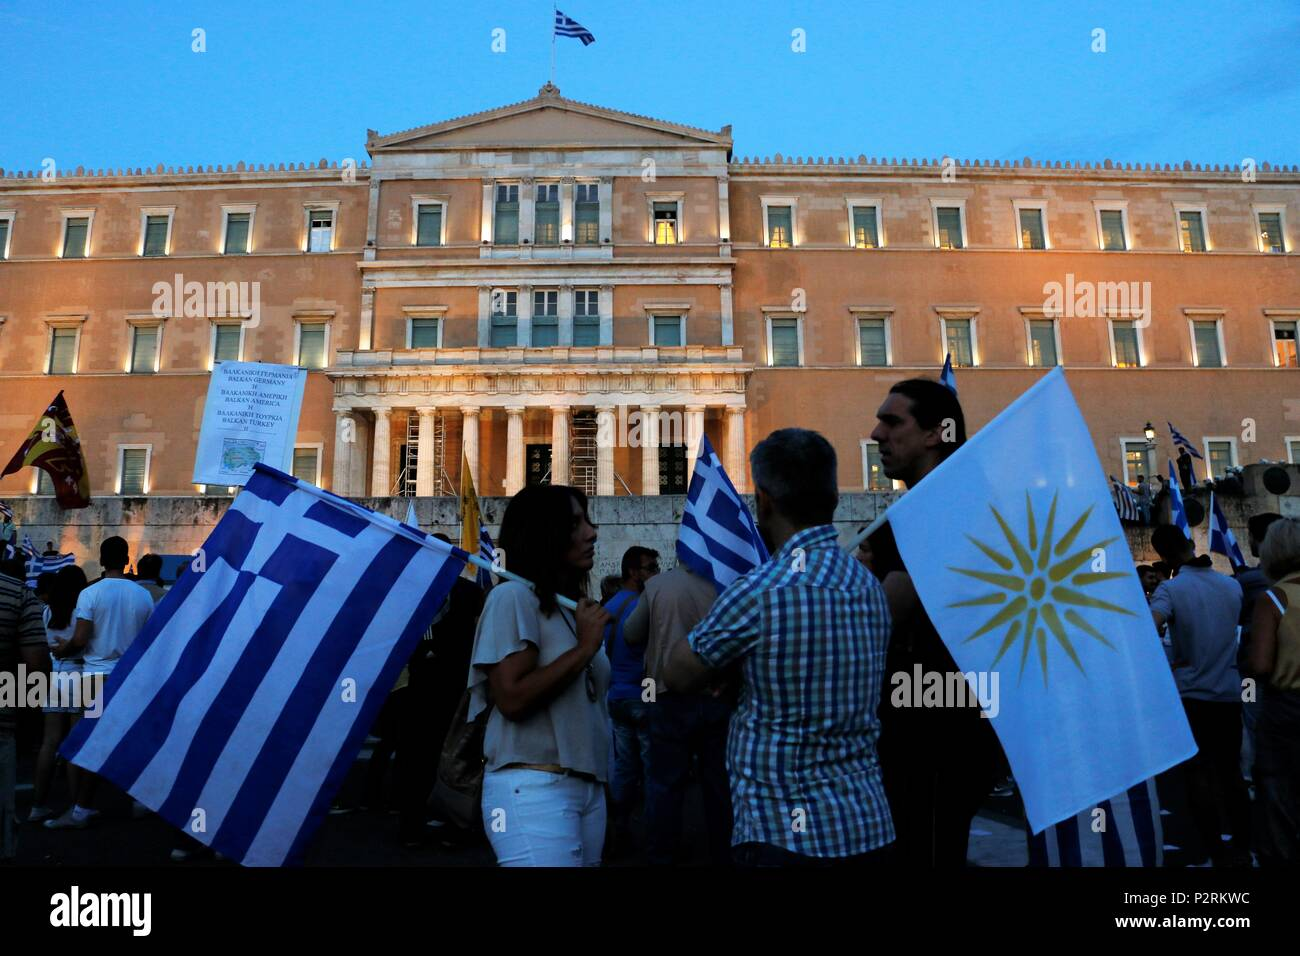 Athens Greece 16th June 2018 Demonstrators Seen Holding Flags In